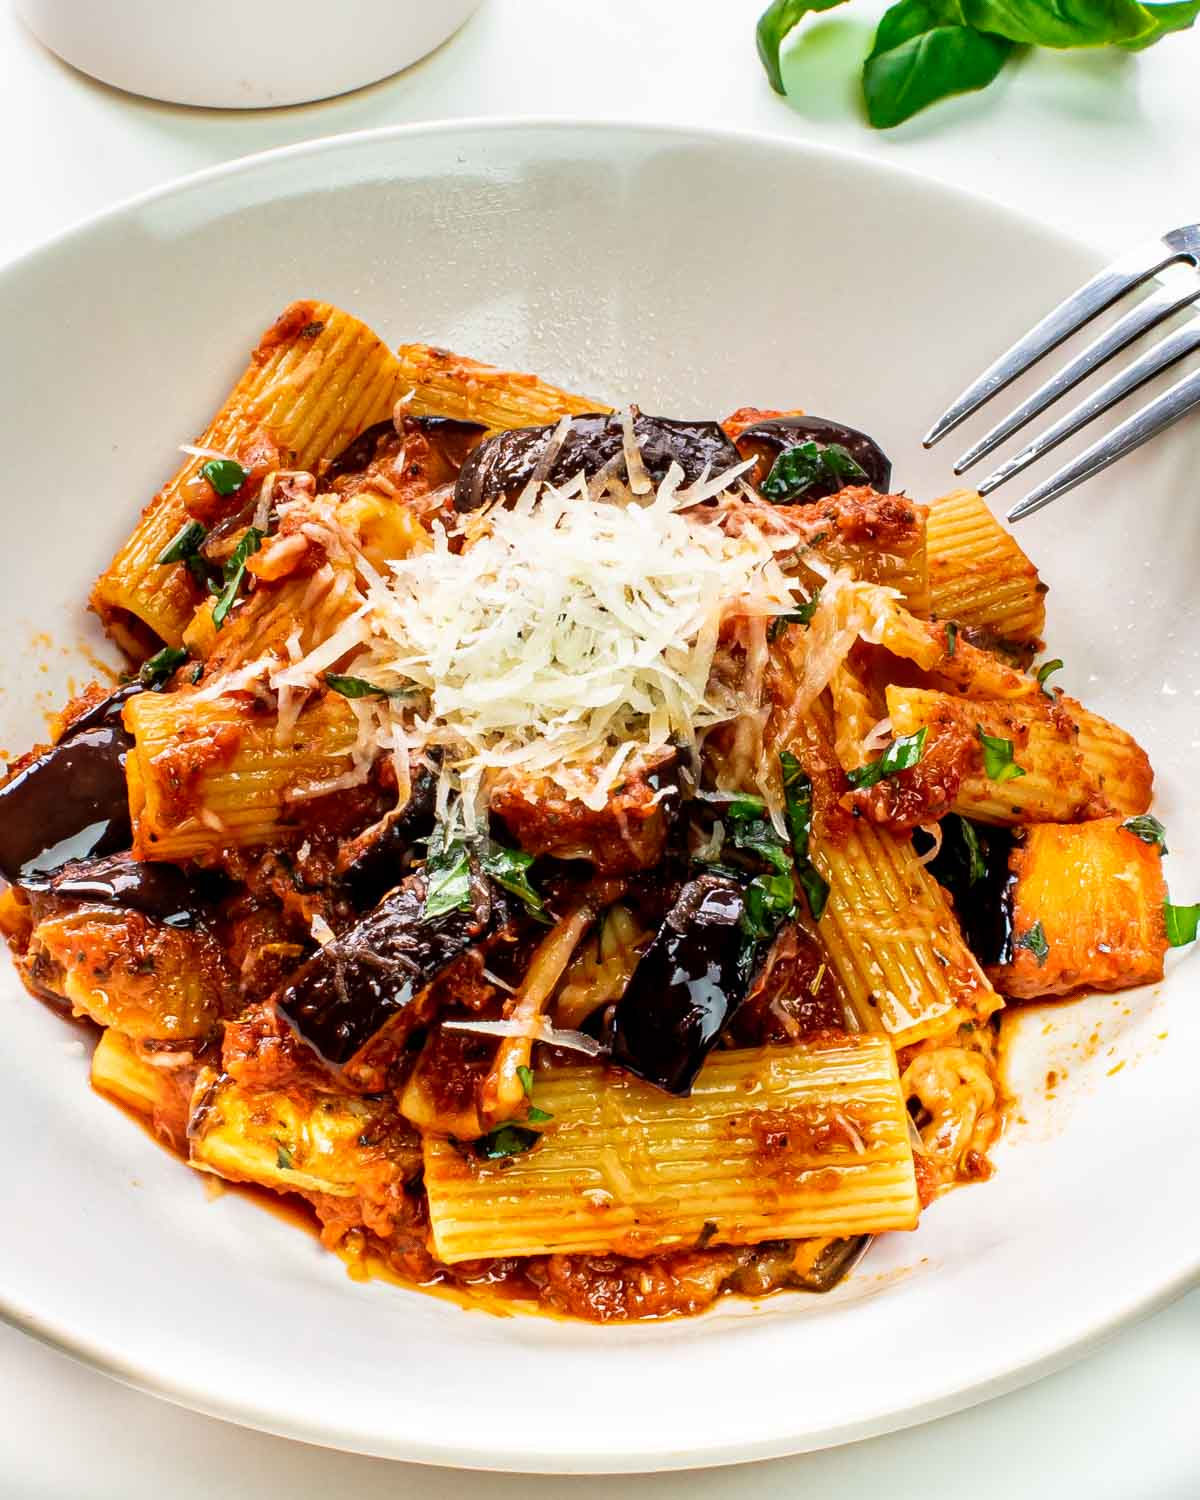 pasta alla norma in a white plate garnished with parmesan cheese.